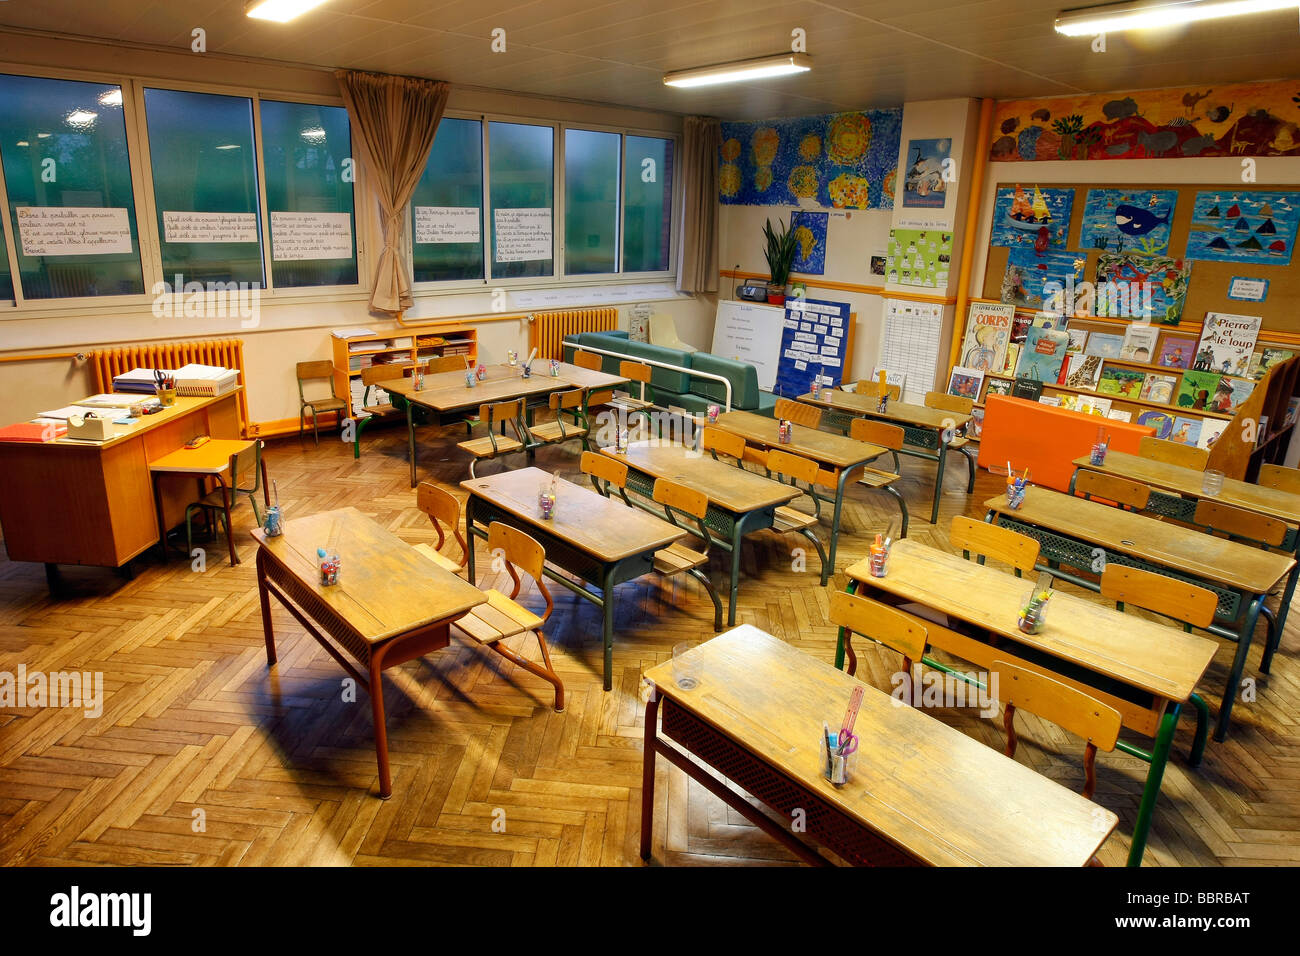 Elementary School Classroom Without Children The Rooms